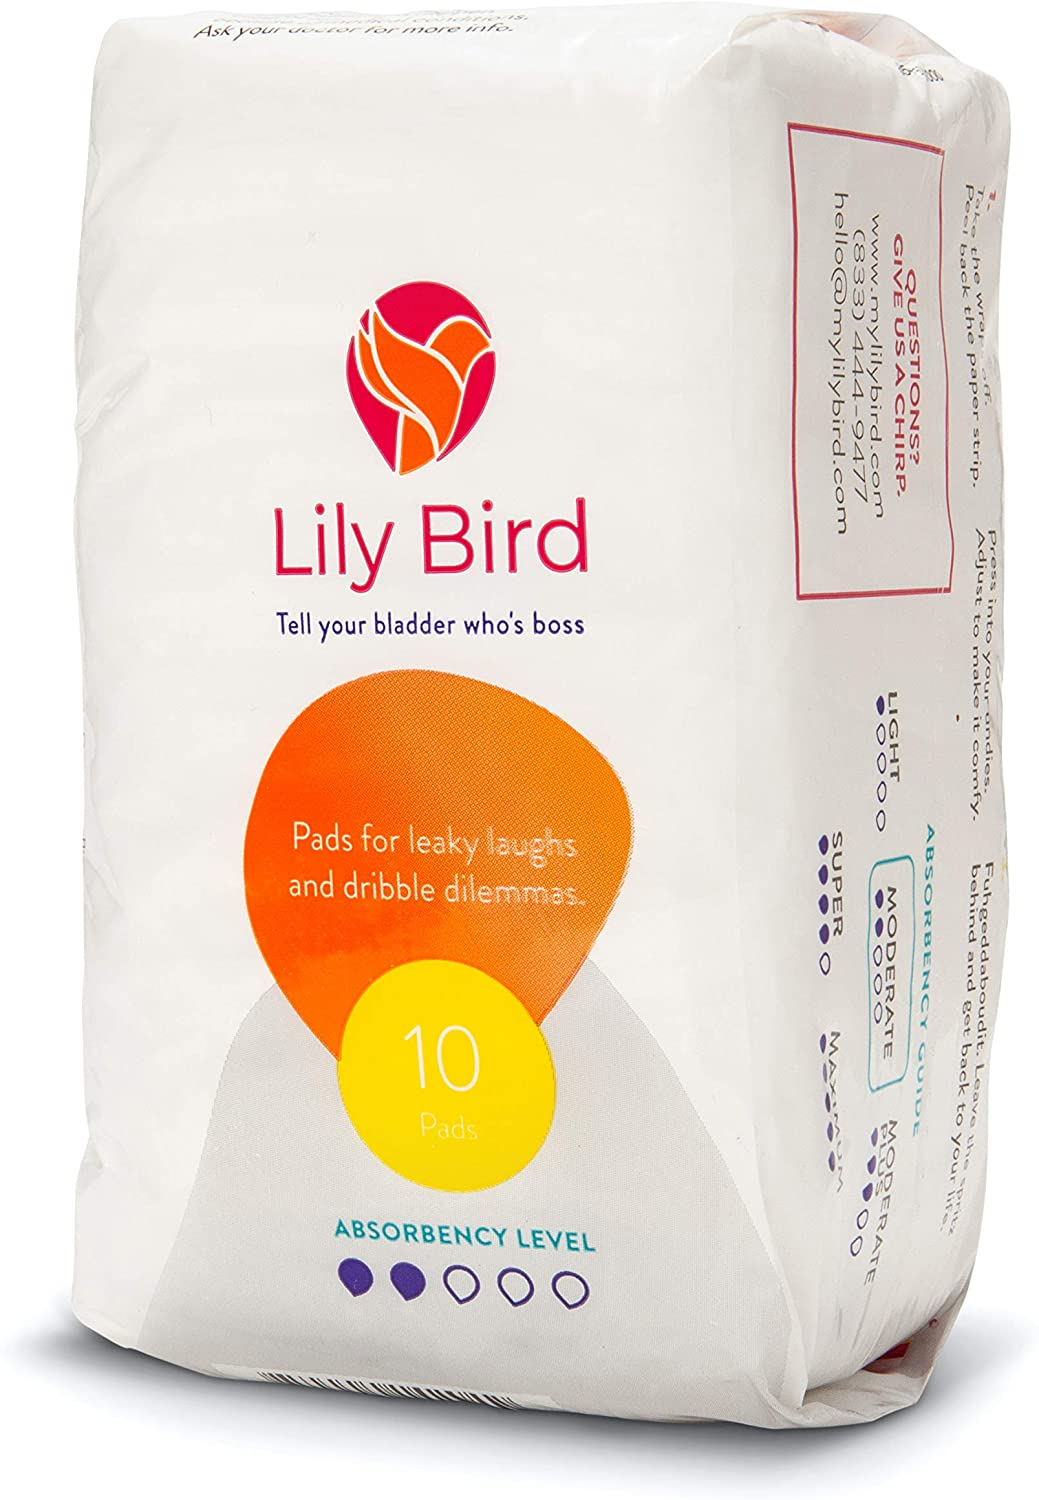 Lily Bird Incontinence Pads for Women, 30 Count (3 Packs of 10) (Moderate)